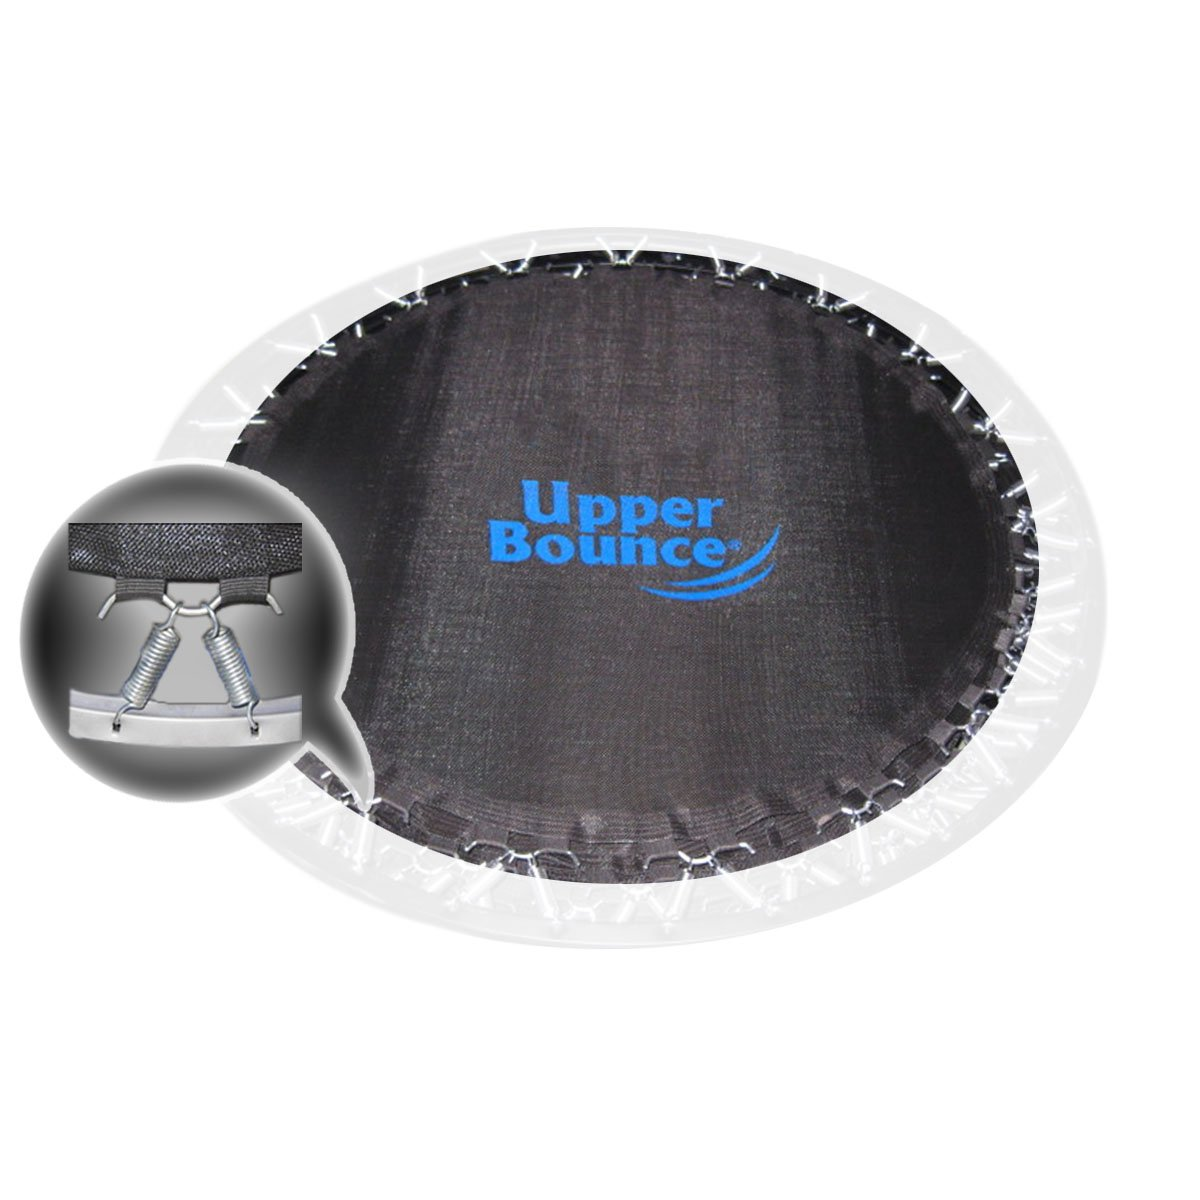 Upper Bounce Mini Trampoline Replacement Jumping Mat, fits for 36 Inch Round Frames, Using 30 3.5'' Springs -MAT ONLY by Upper Bounce